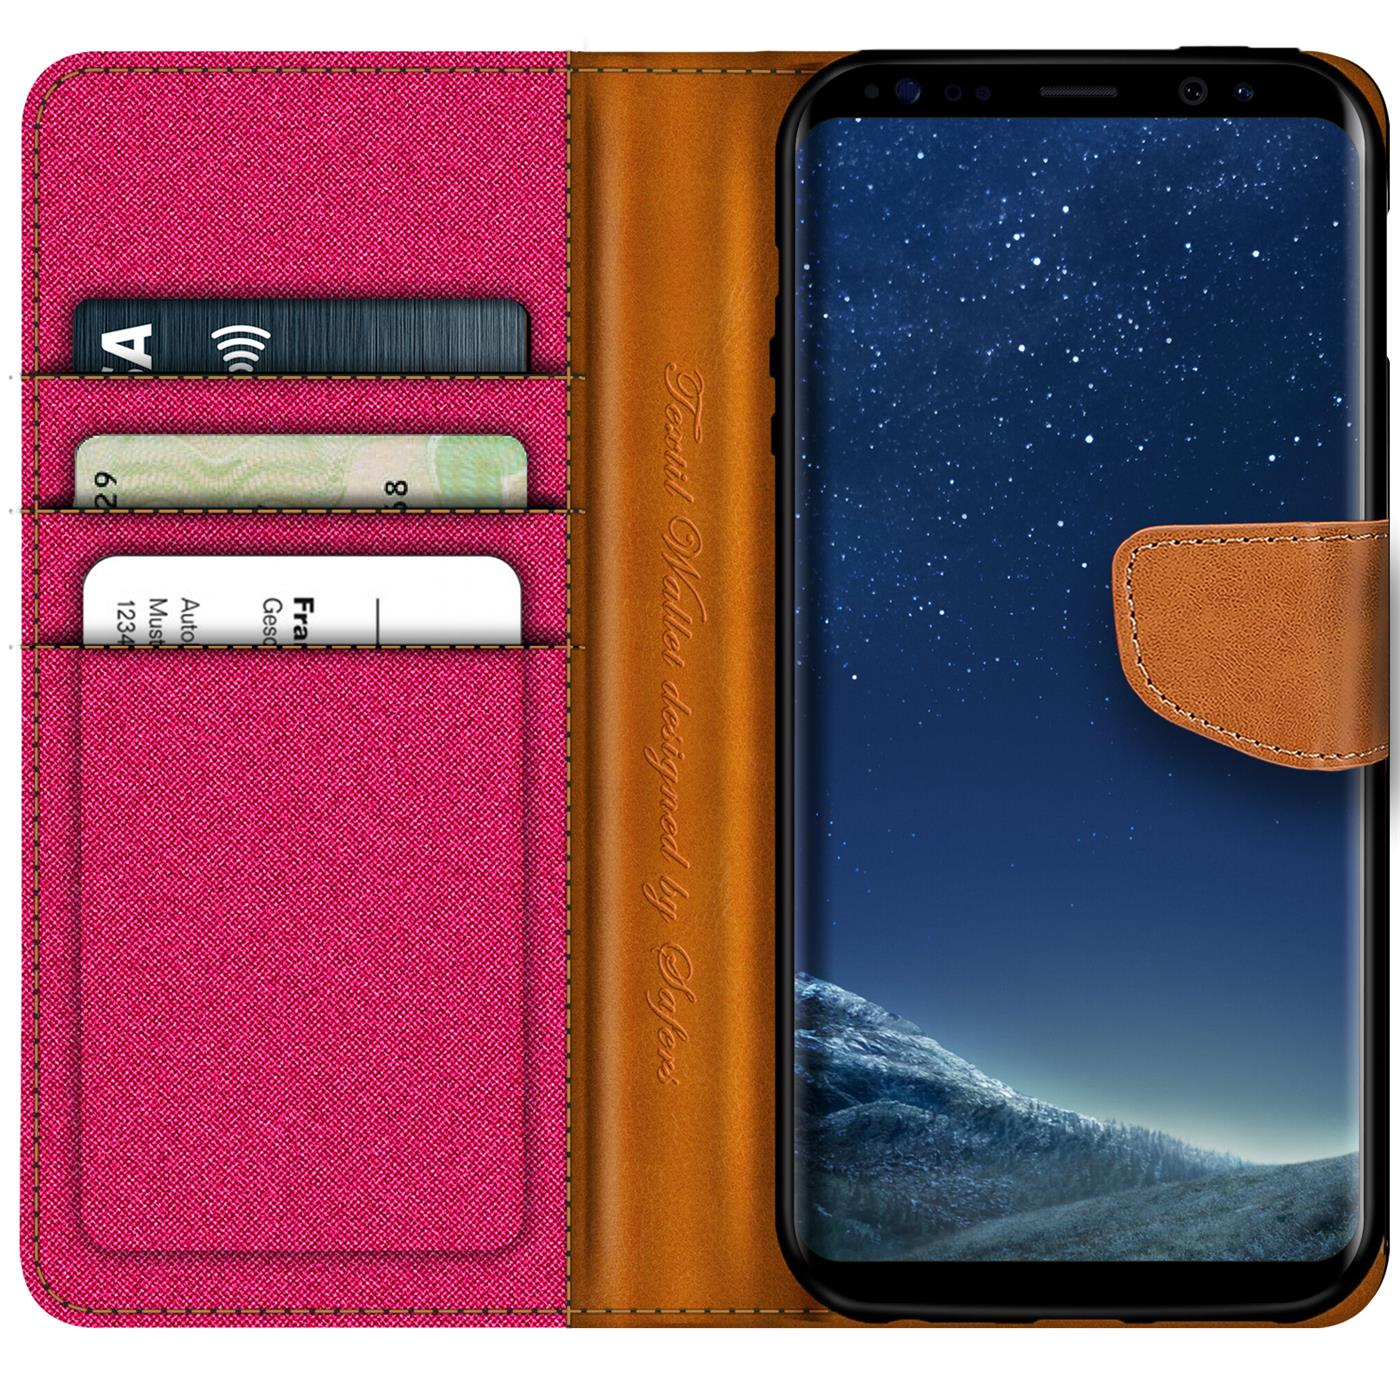 Samsung-Galaxy-S8-Plus-Phone-PU-Leather-Magnetic-Flip-Case-Wallet-Denim-Cover thumbnail 19